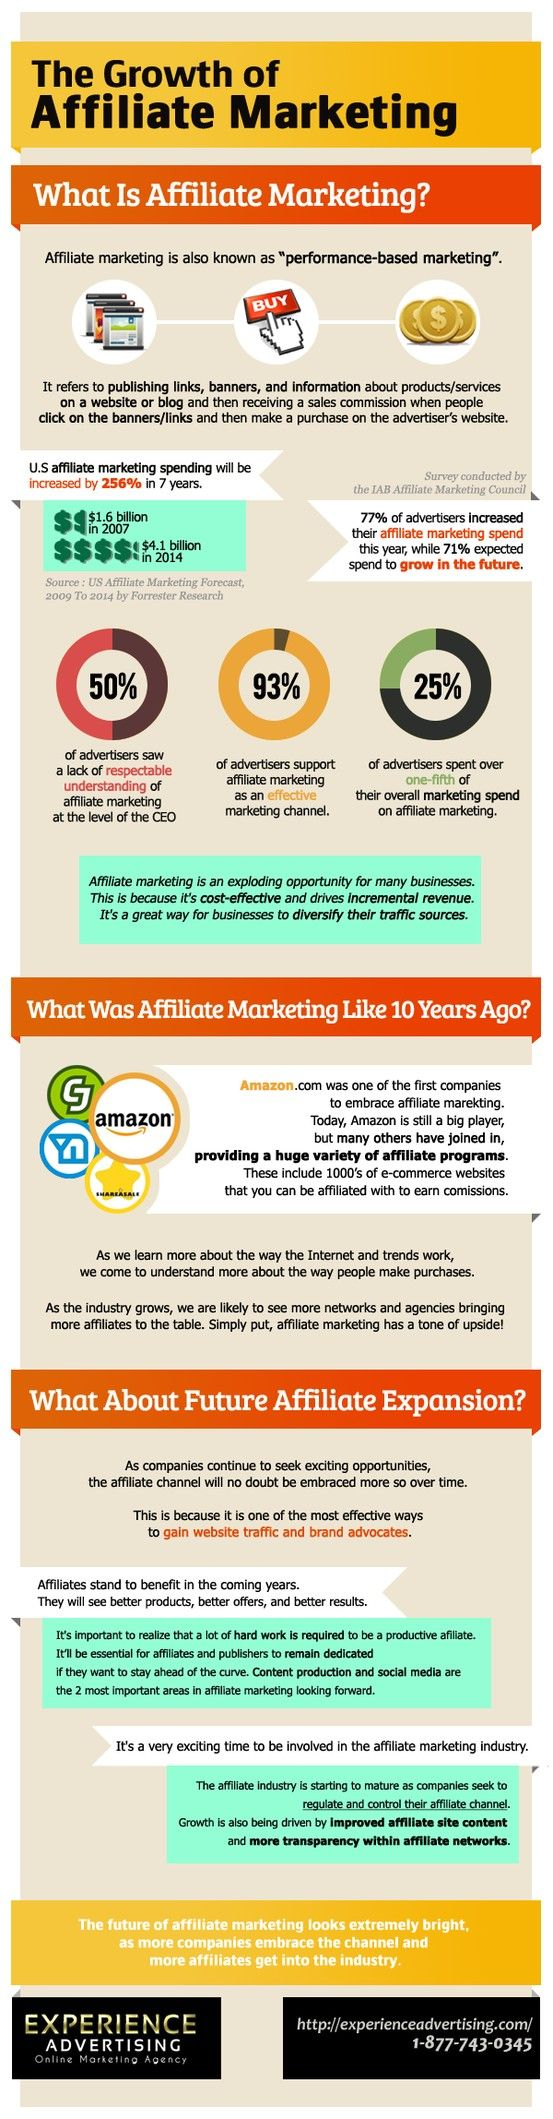 The growth of affiliate marketing.